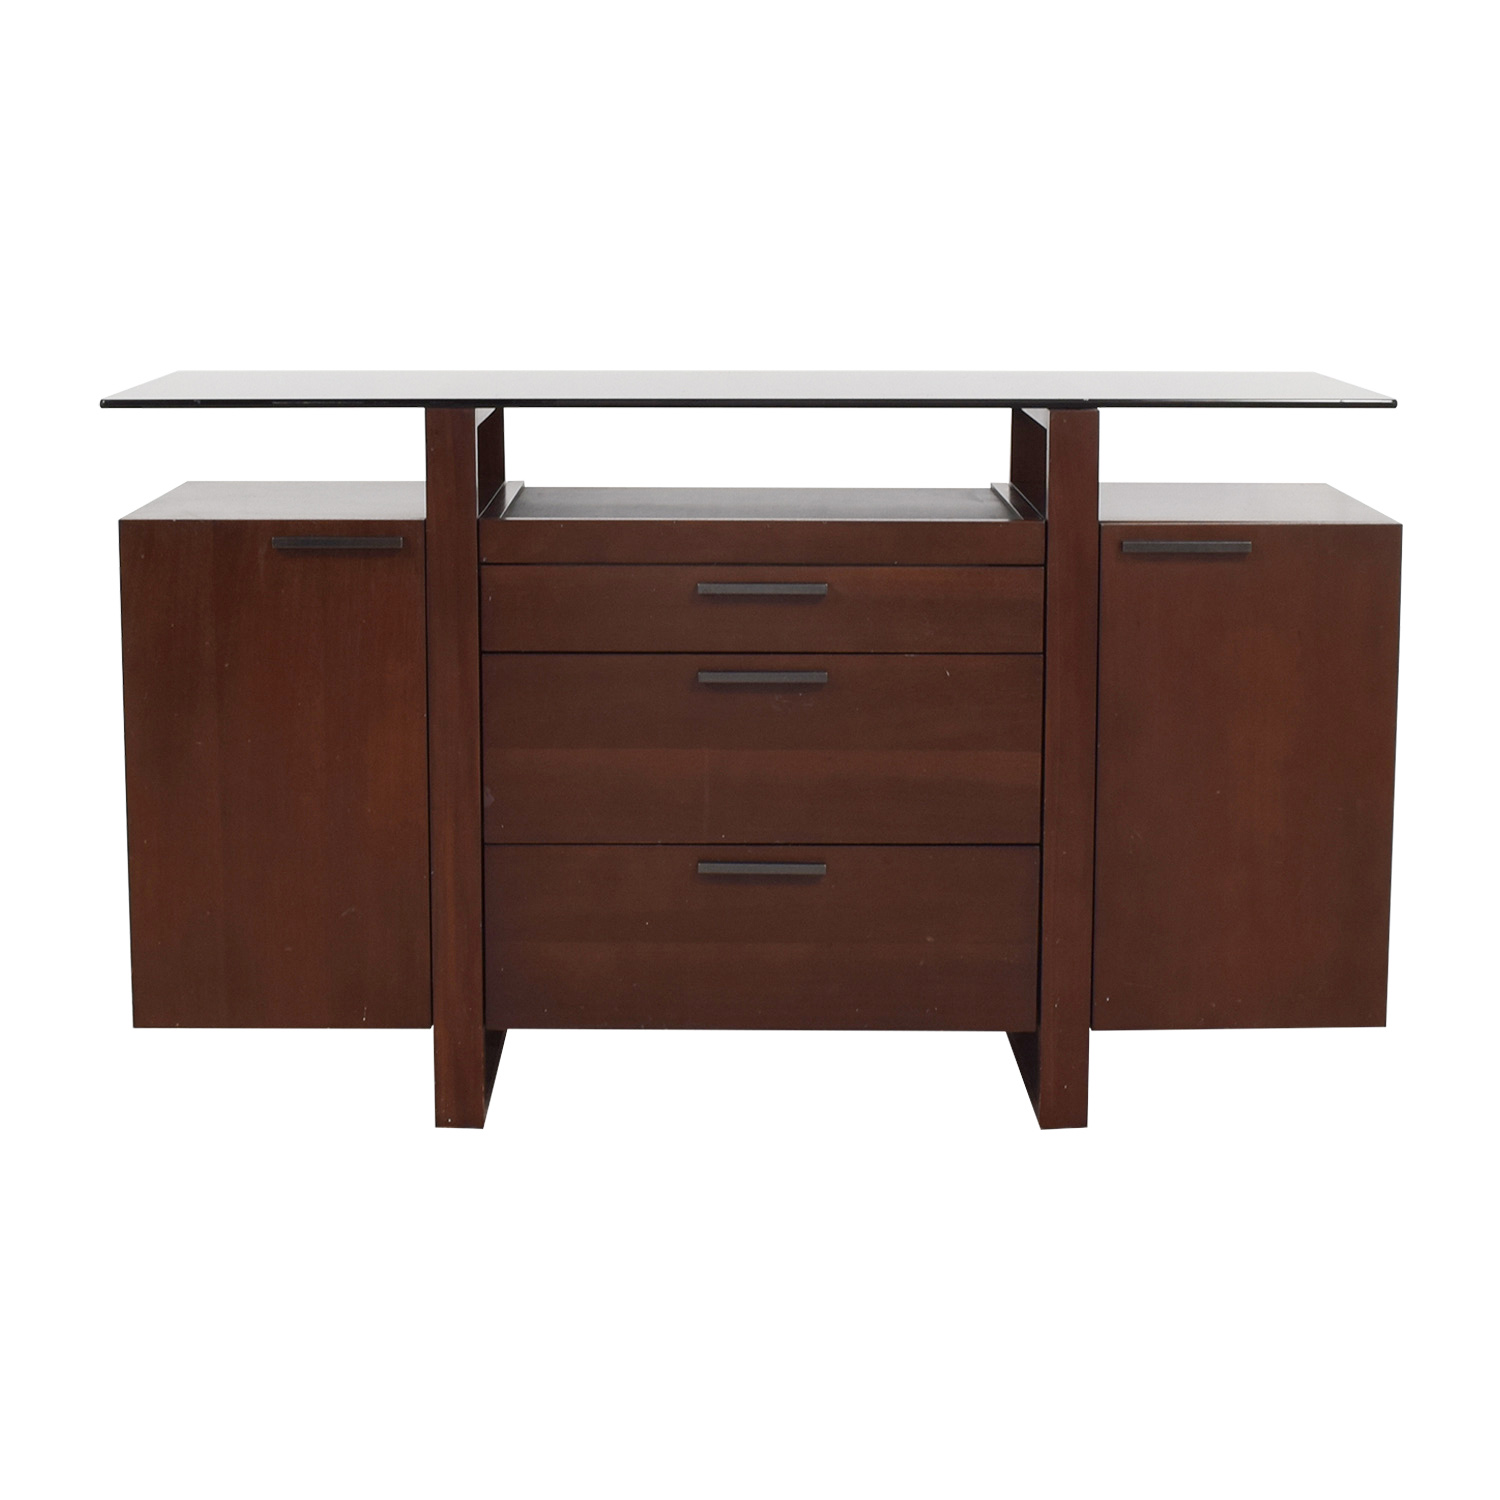 Casana Casana Wood and Smoked Glass Buffet on sale